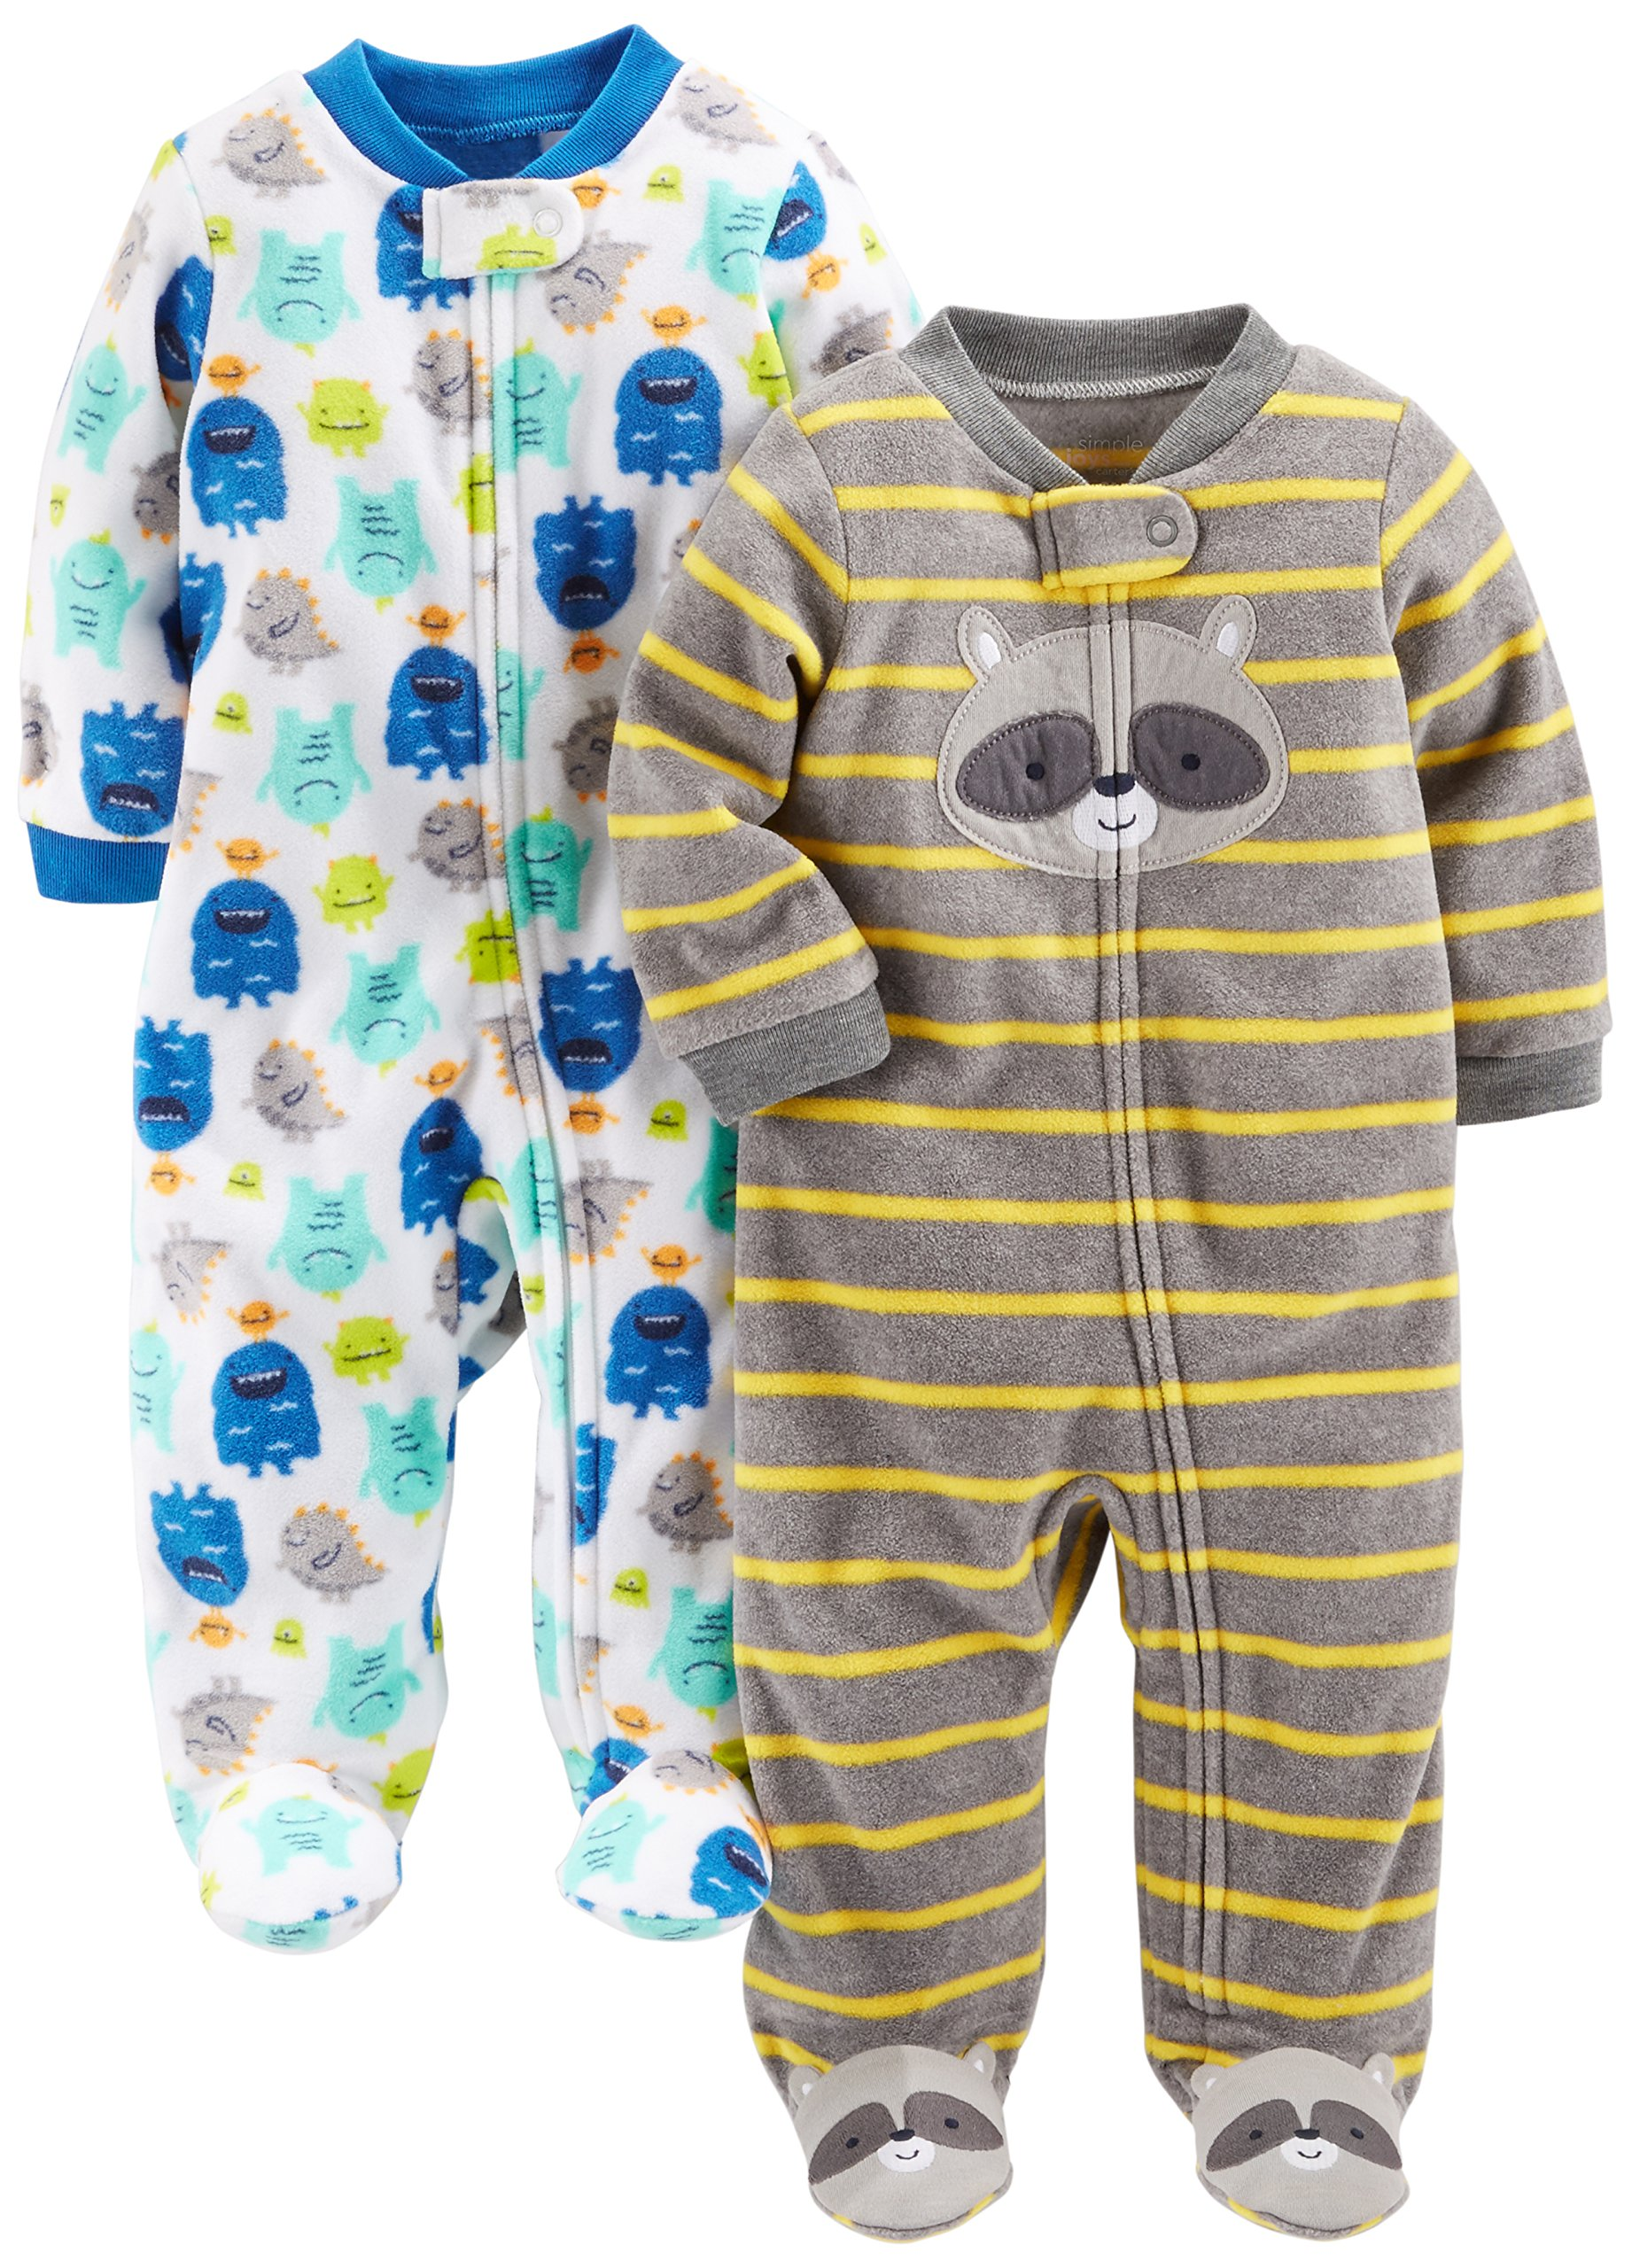 Simple Joys by Carters baby-boys 2-Pack Neutral Cotton Footless Sleep and Play Footie